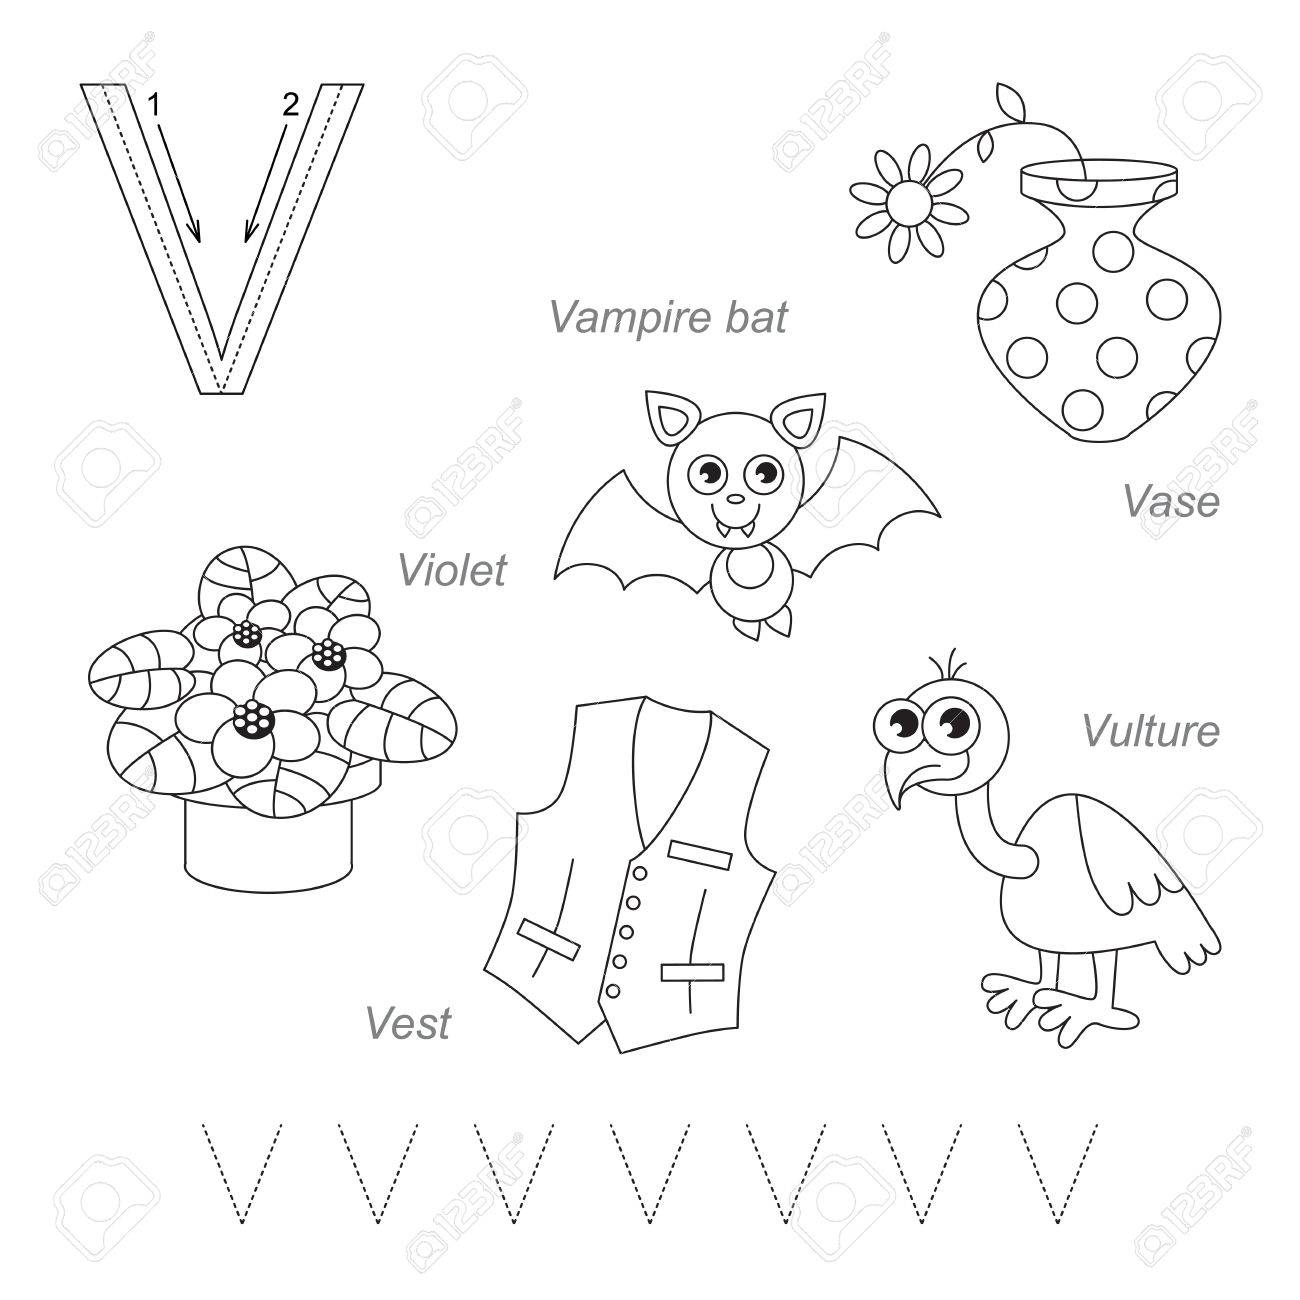 tracing worksheet for children full english alphabet from a to z pictures for letter